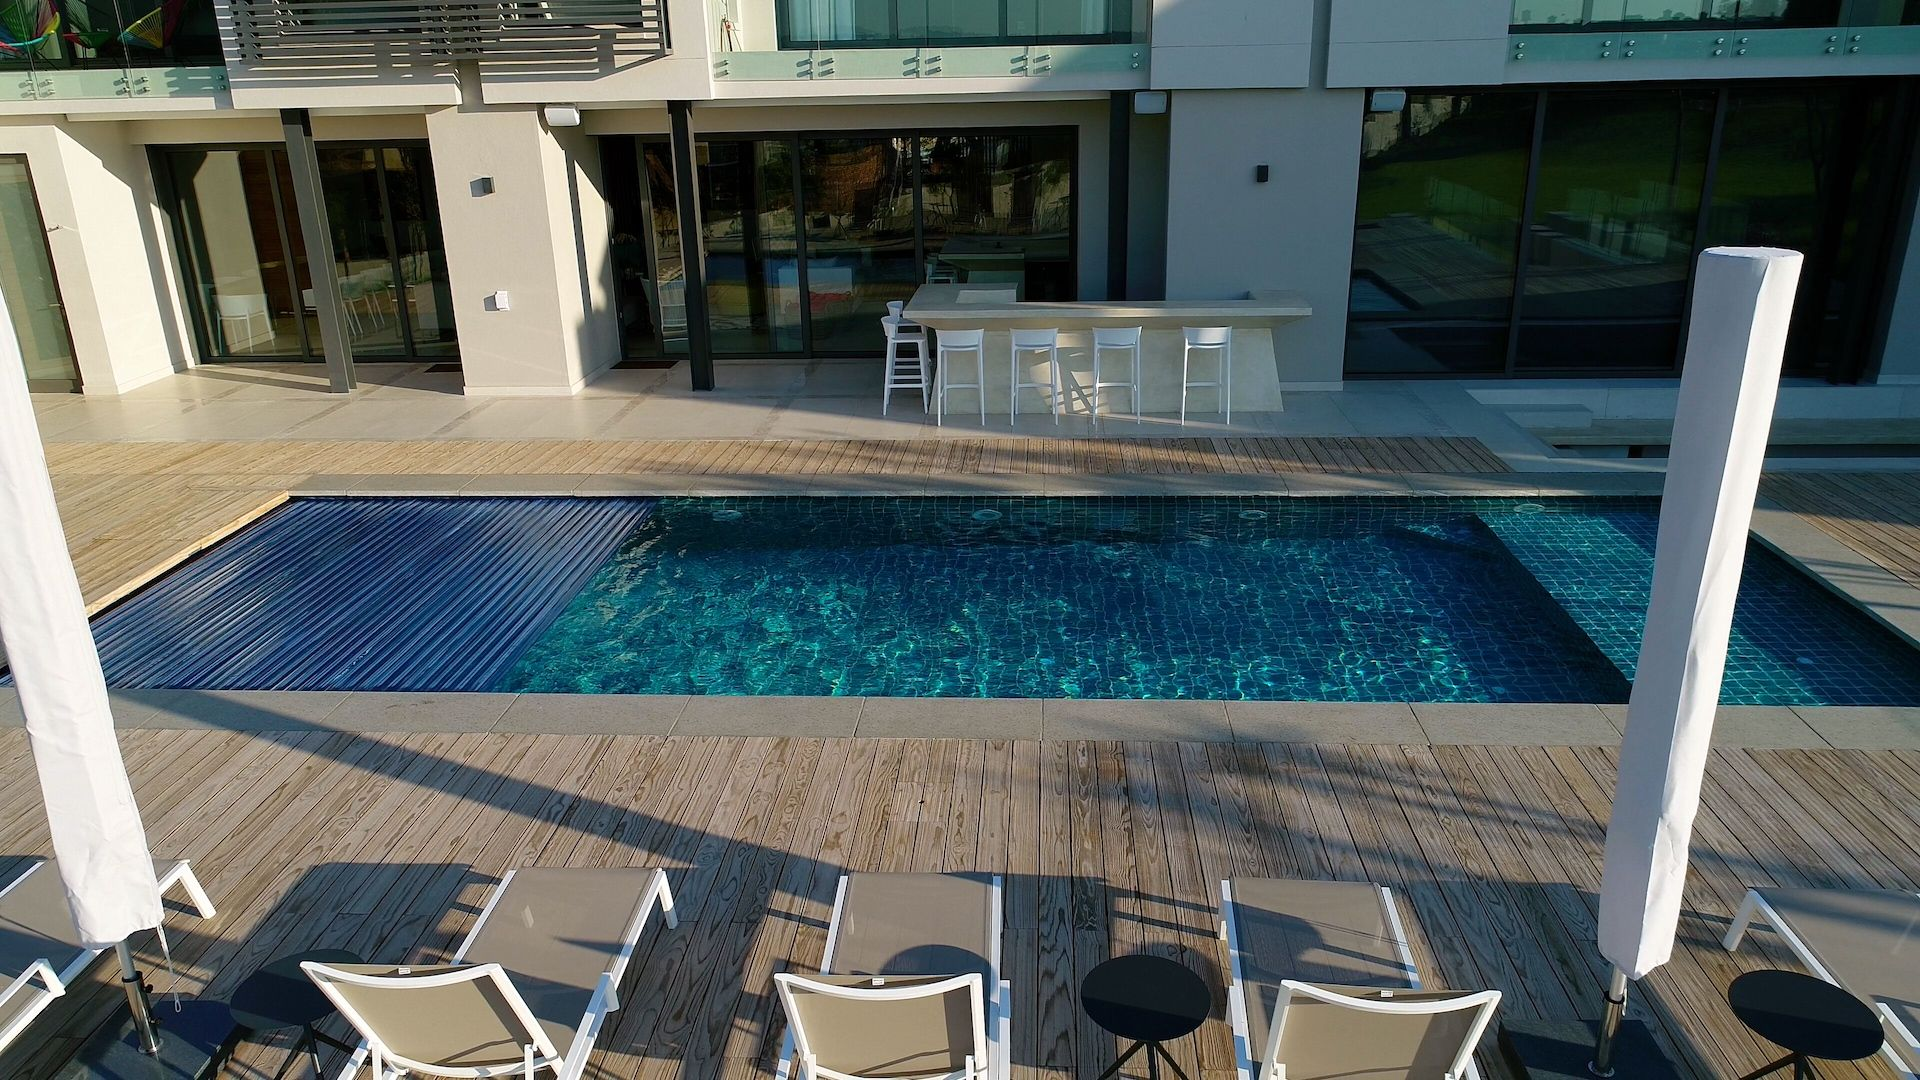 Designer Pool Covers Automatic Pool Covers Supply and